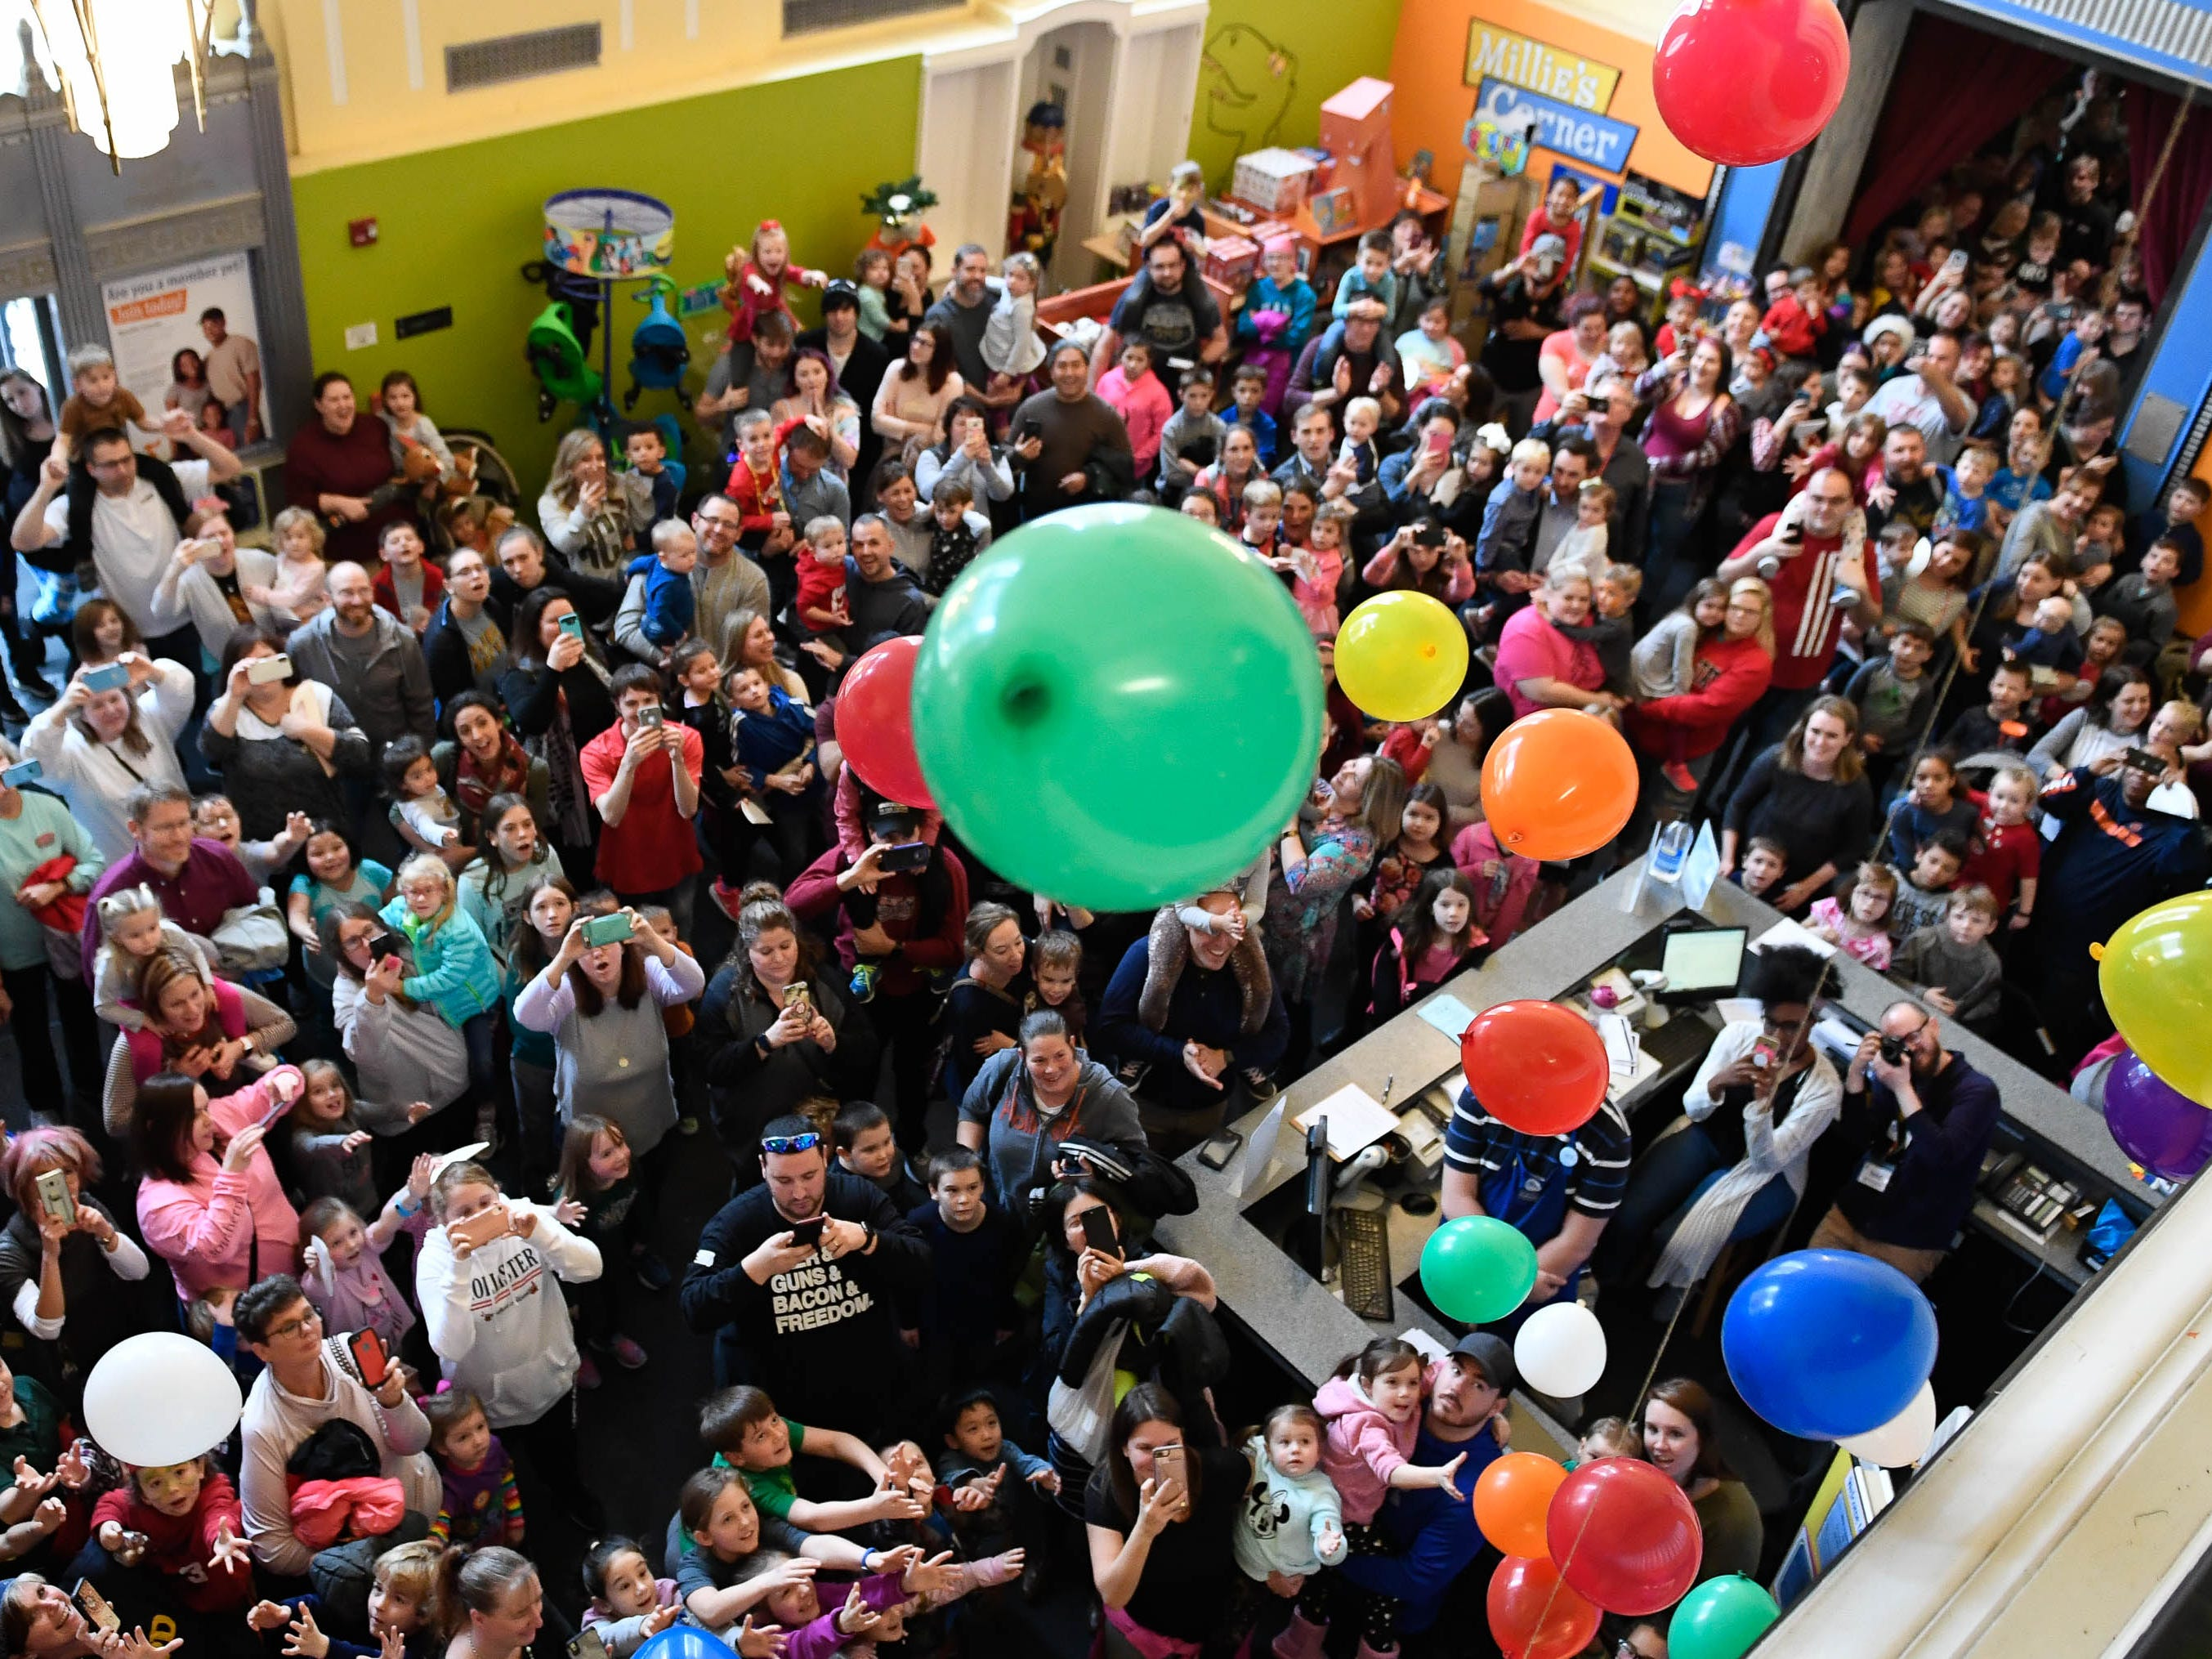 "The Koch Family Children's Museum of Evansville celebrated the New Year with their annual noon ""Ball Drop"" into a sea of cheering children and parents gathered in the entrance of the museum in downtown Evansville, December 31, 2018."